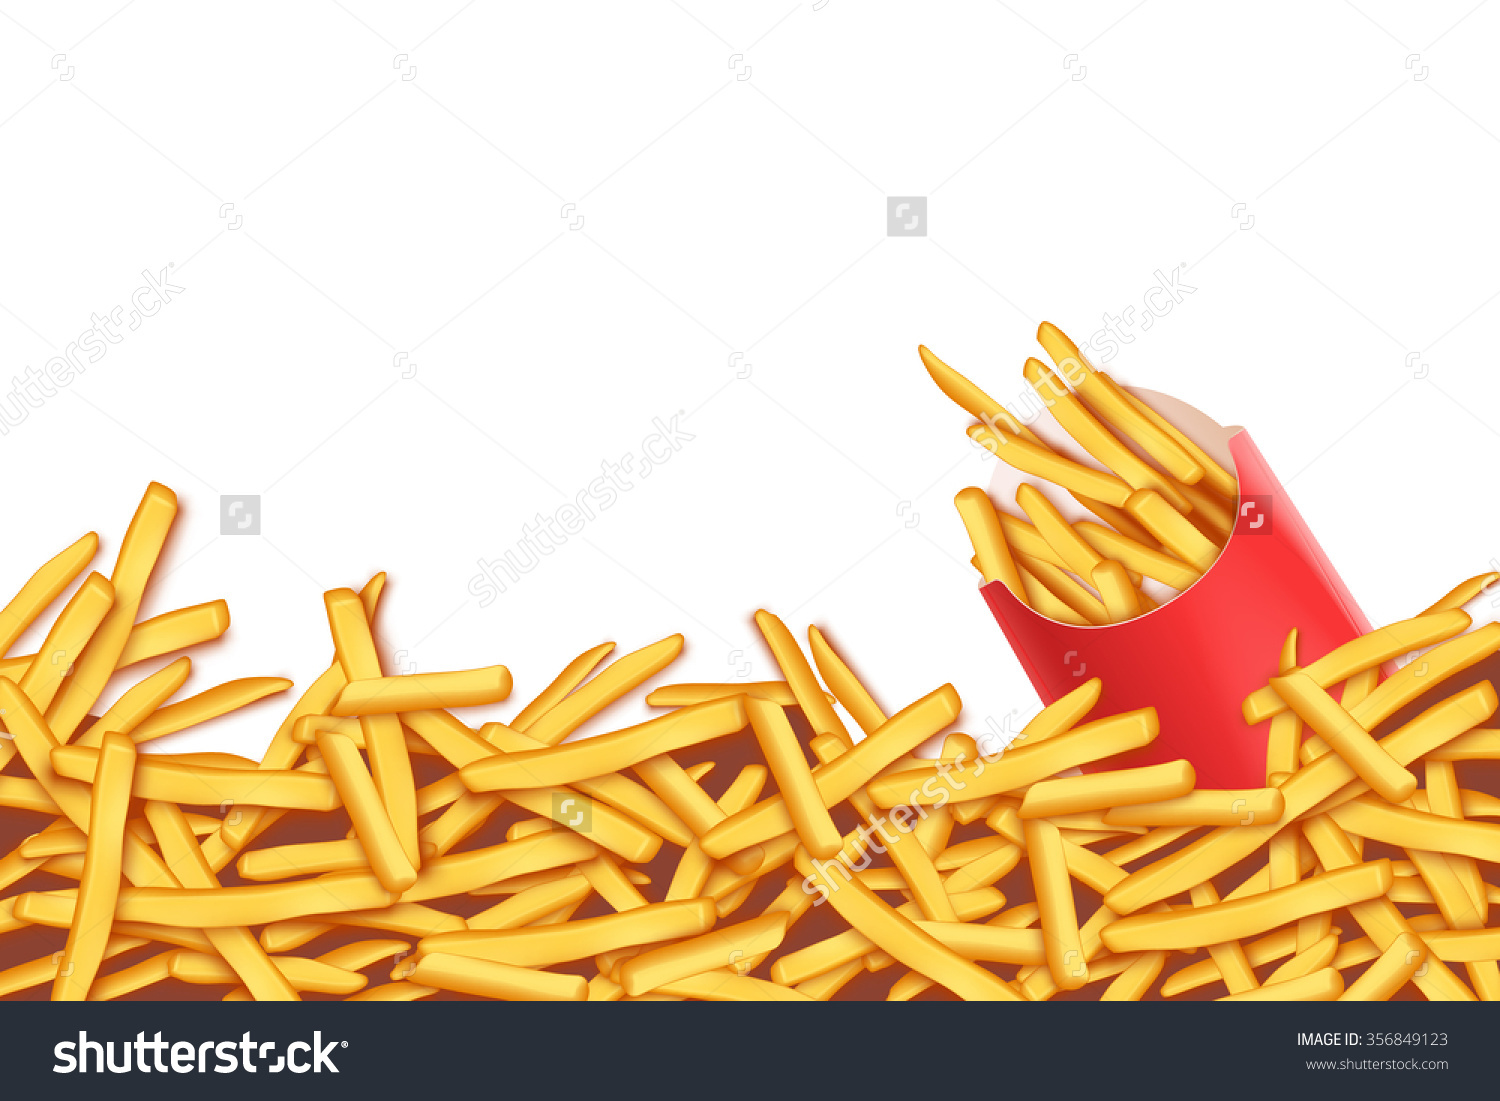 Illustration French Fries Red Pack On Stock Vector 356849123.